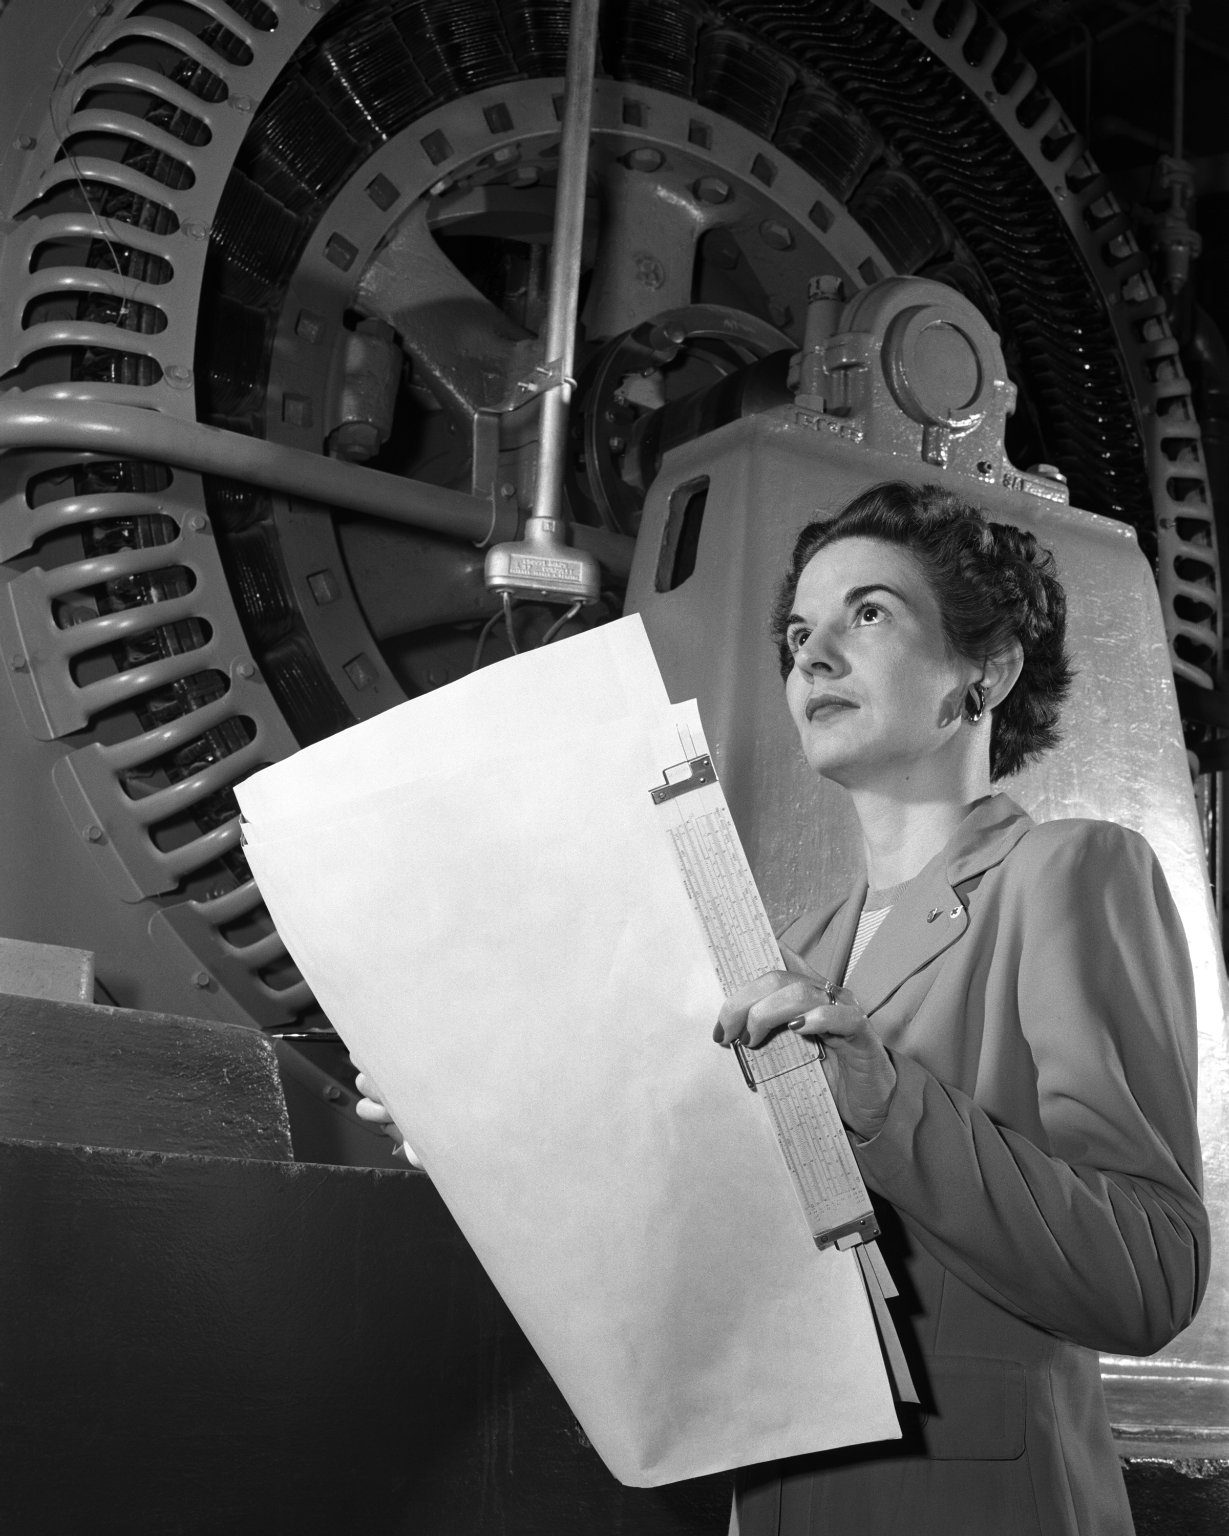 image of woman looking up, carrying plans and slide rule, with huge machinery in the background